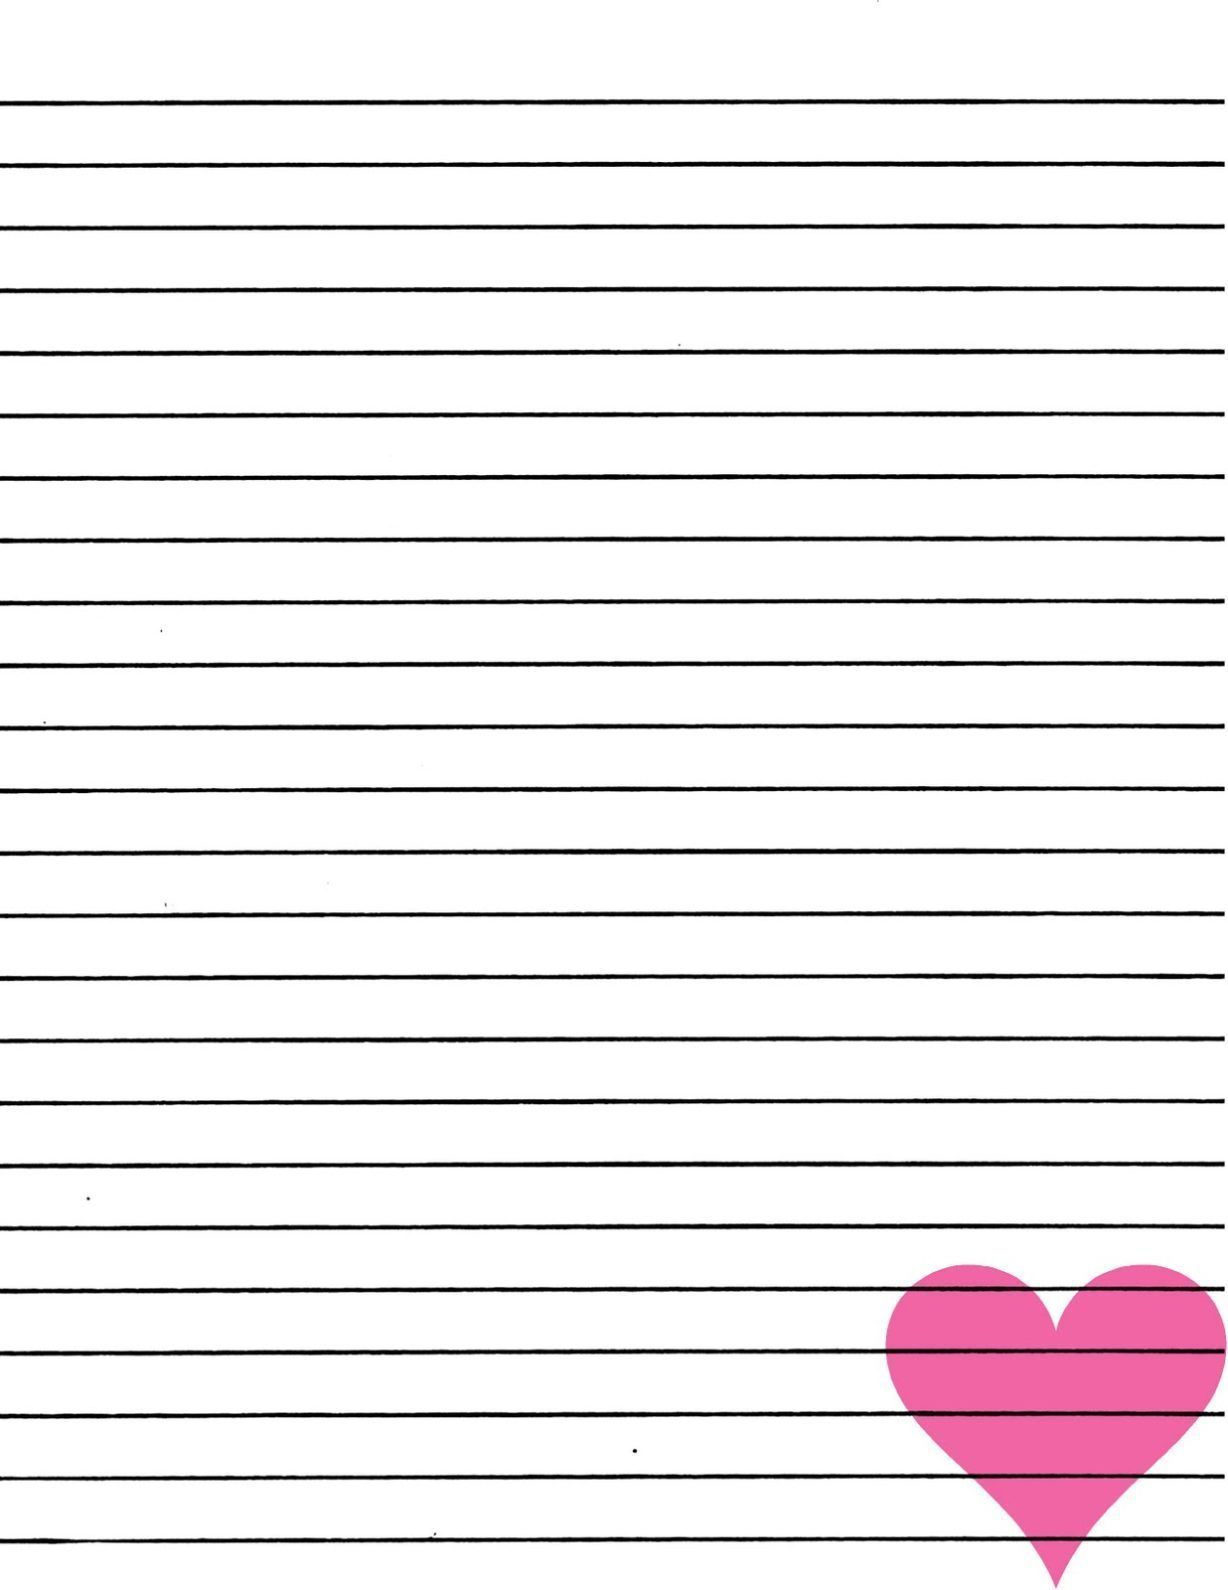 Free Printable Lined Stationary